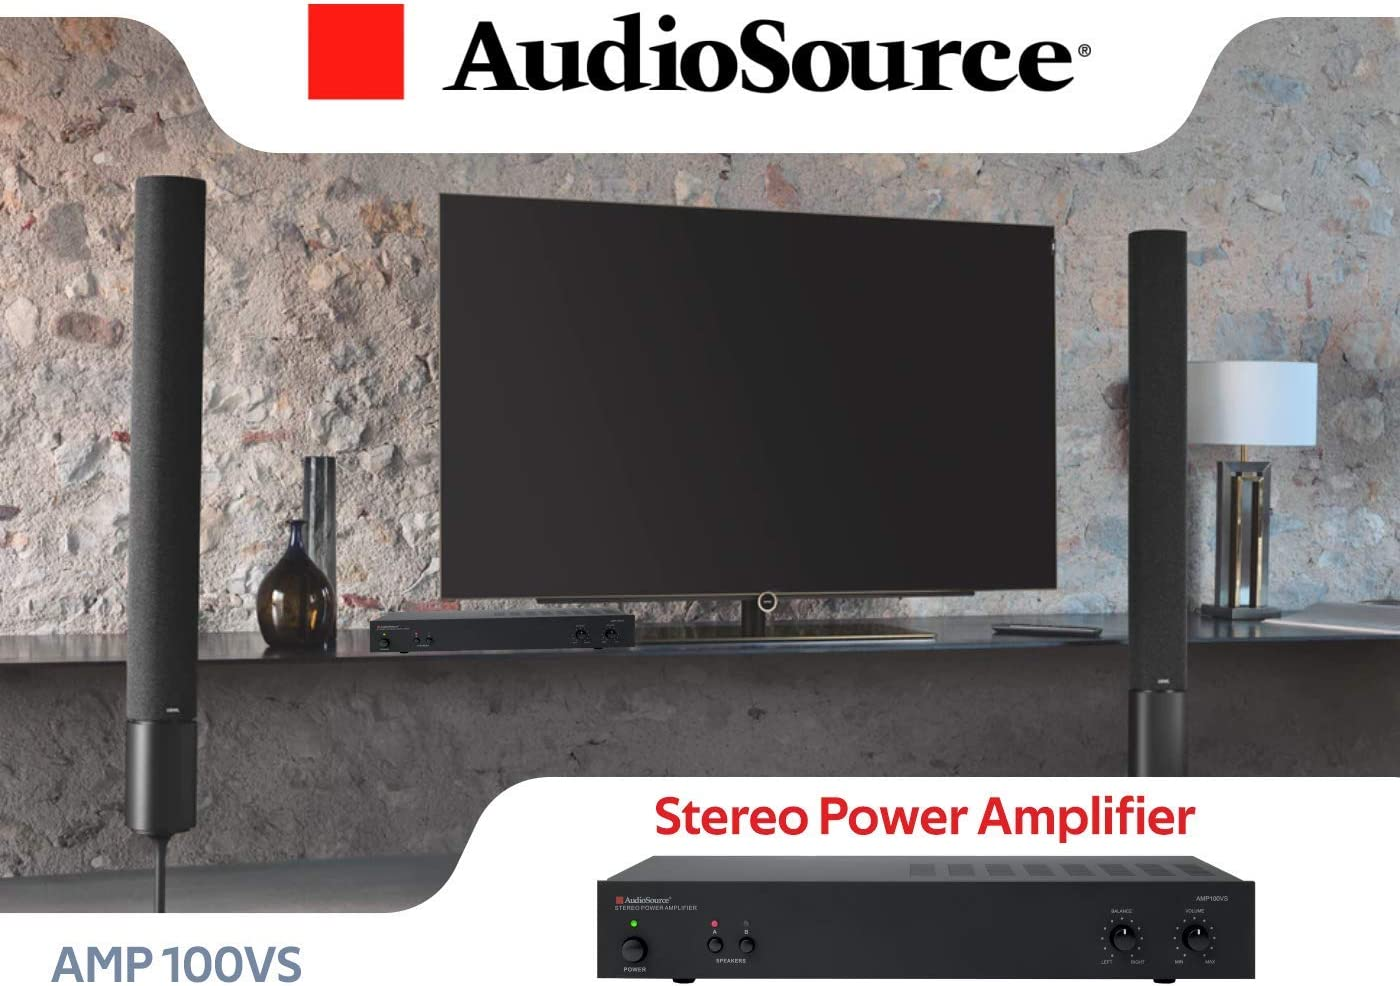 Stereo Power A Amplifier AMP100VS for Home Sound Systems AudioSource Analog Amplifier